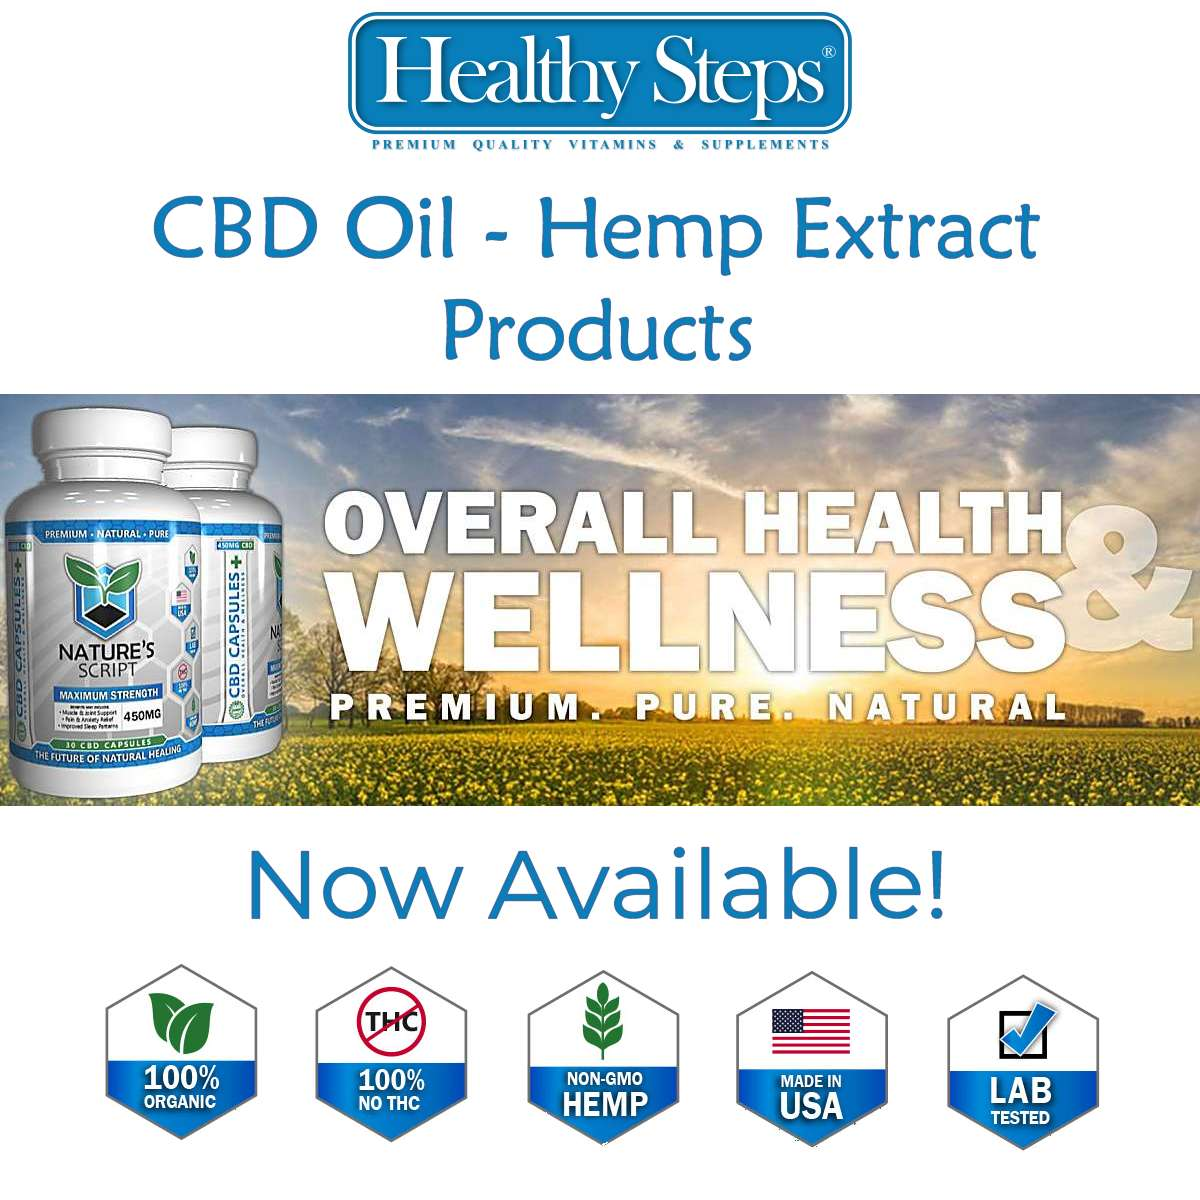 By Popular Demand Healthy Steps Now Offers Hemp Extract – CBD Oil Products